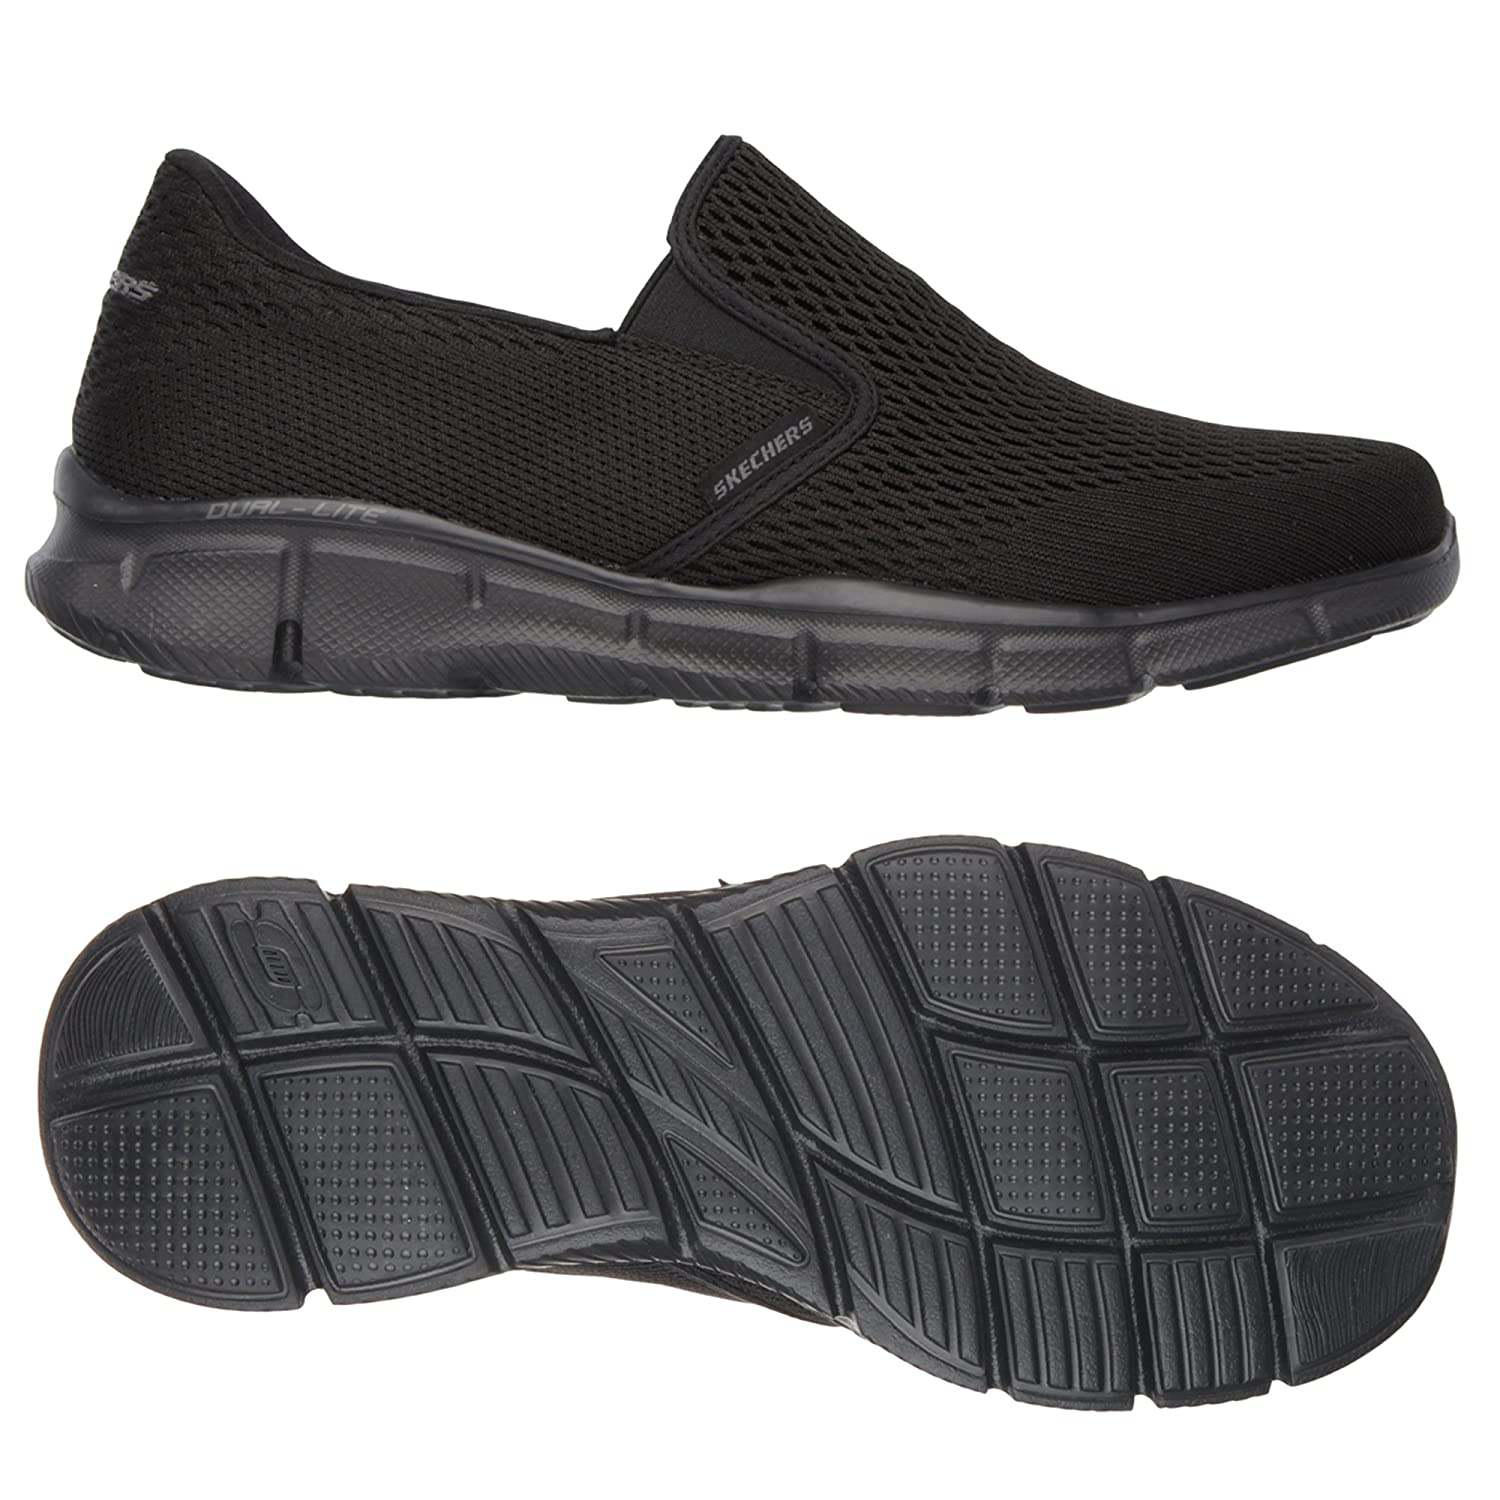 Pila de extraterrestre Prisionero  Skechers Men's Equalizer-Double Play Moccasins: Amazon.co.uk ...